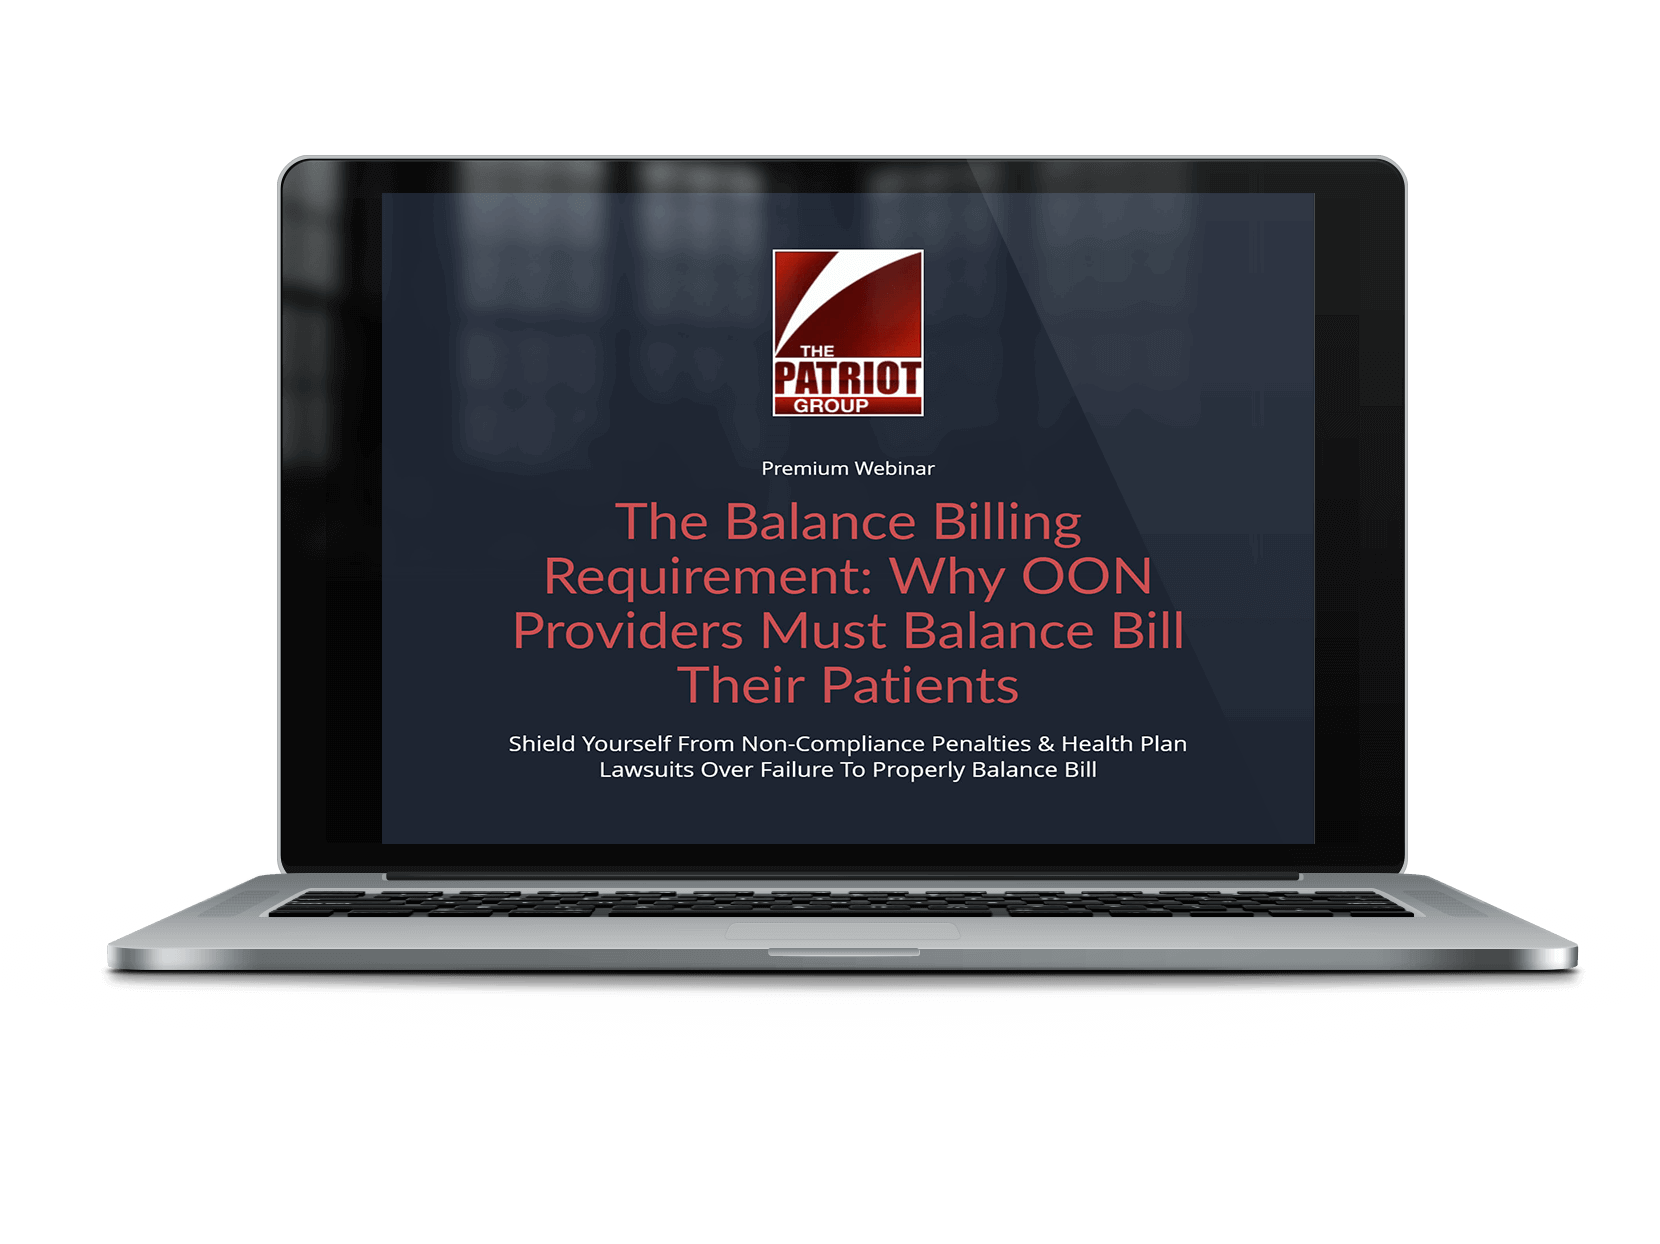 The Balance Billing Requirement: Why Providers Must Balance Bill Patients